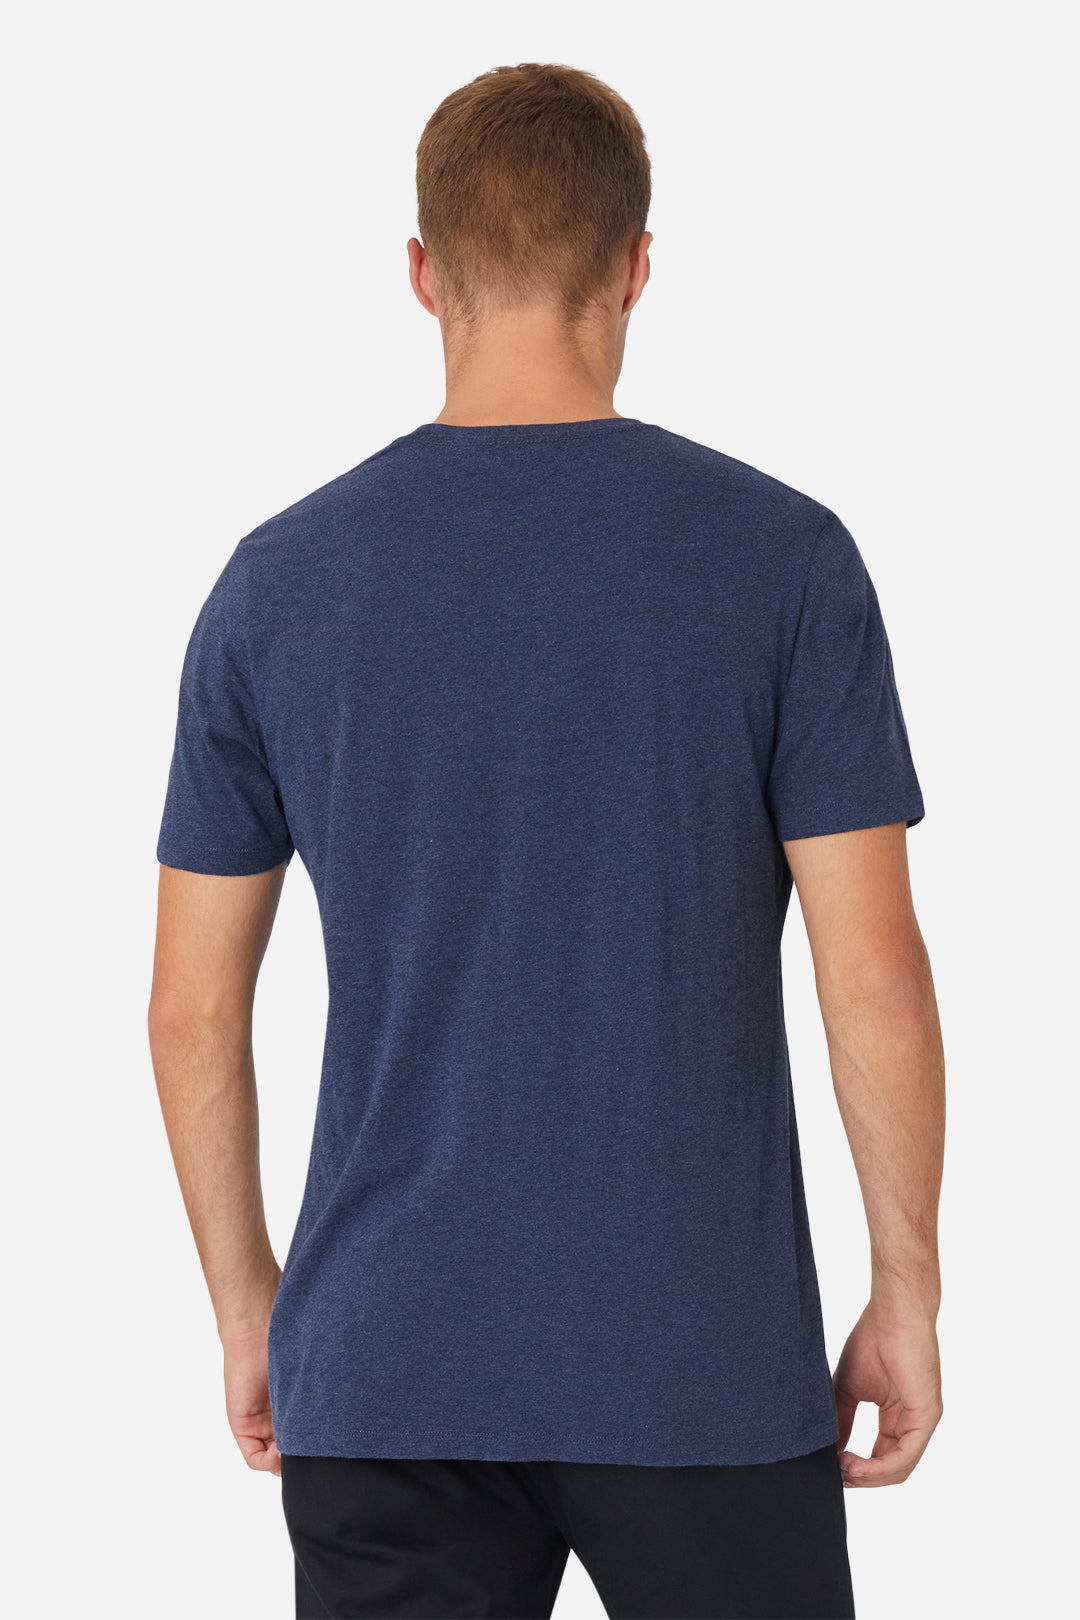 The New Basic Crew Tee - Navy Marle